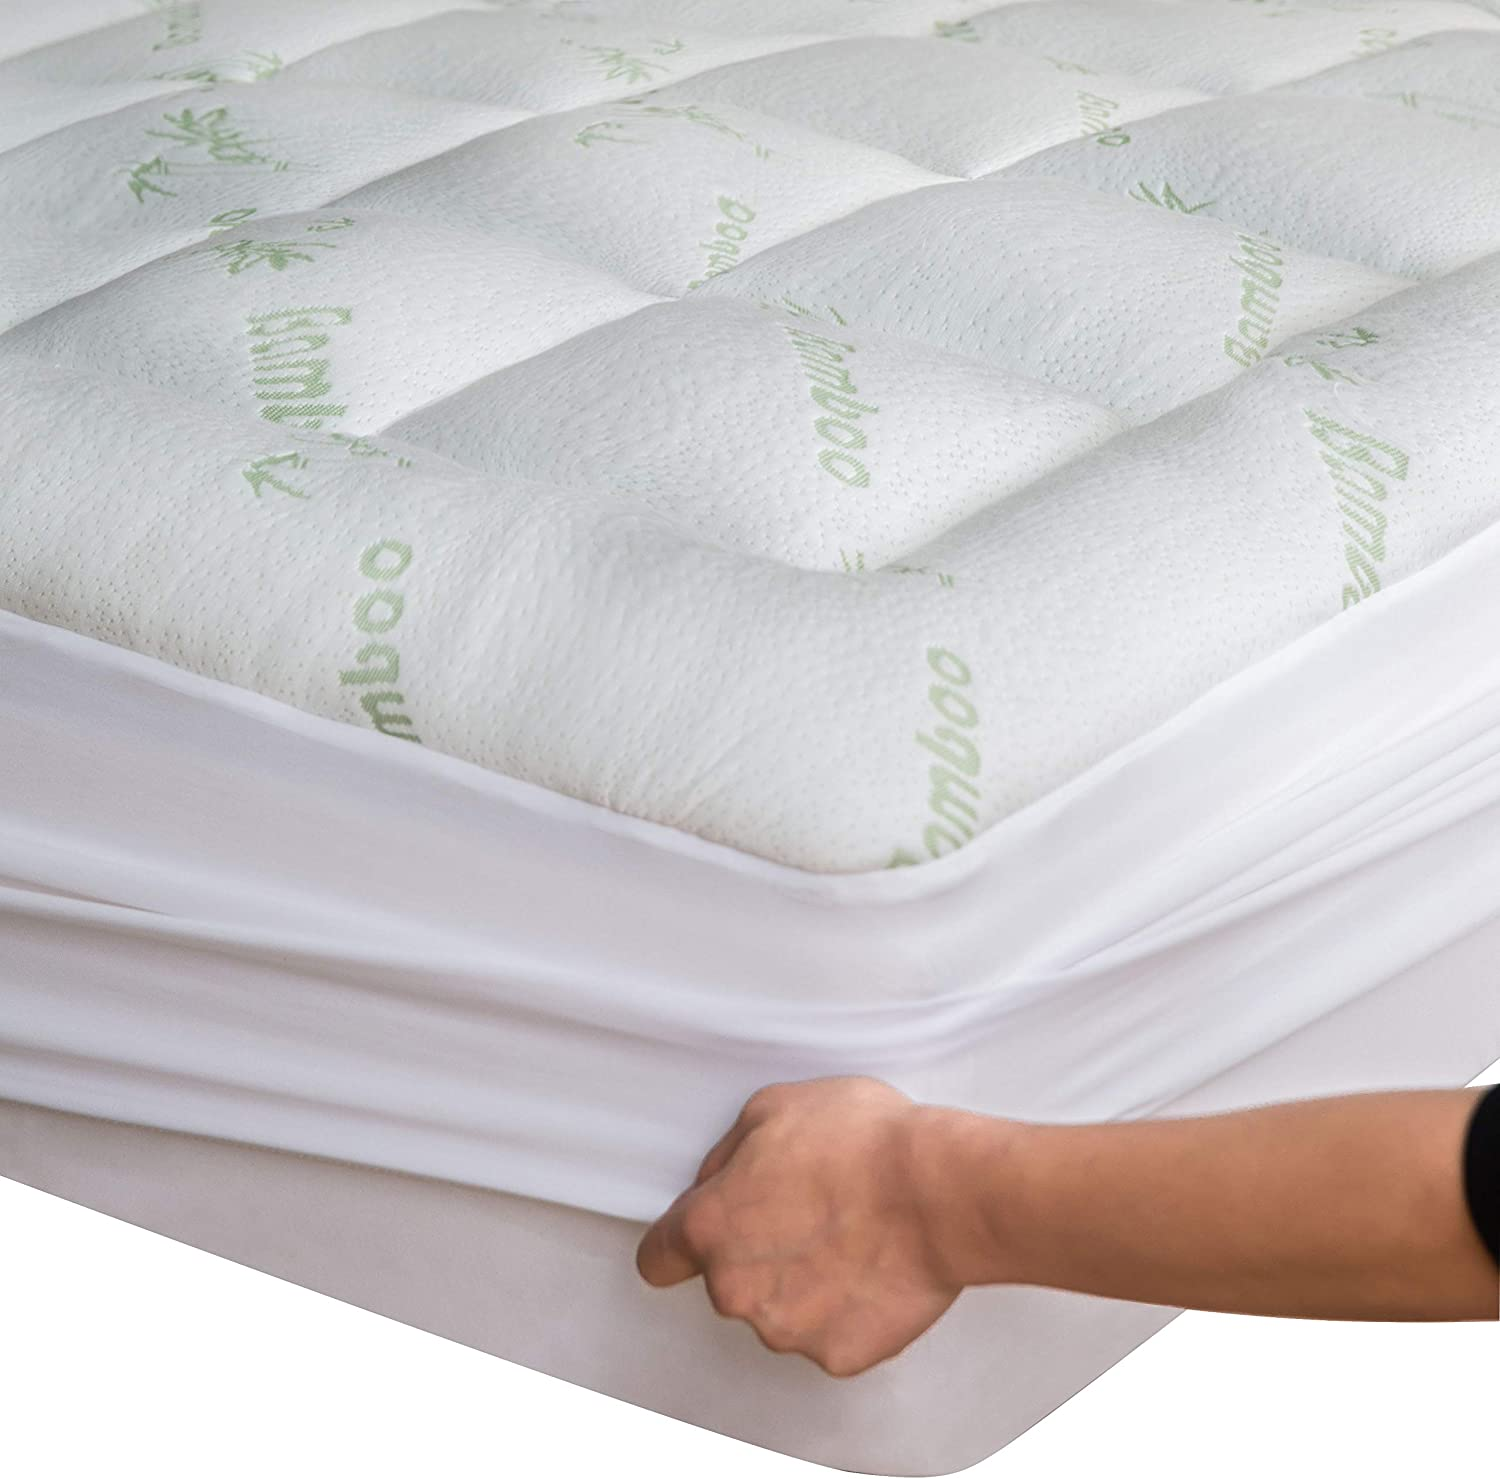 Bamboo Mattress Topper Queen with Bonus Pillow Protector Cooling Pillow Top Mattress Pad Breathable Extra Plush Thick Fitted 8-21Inches Rayon Cooling Fabric Ultra Soft